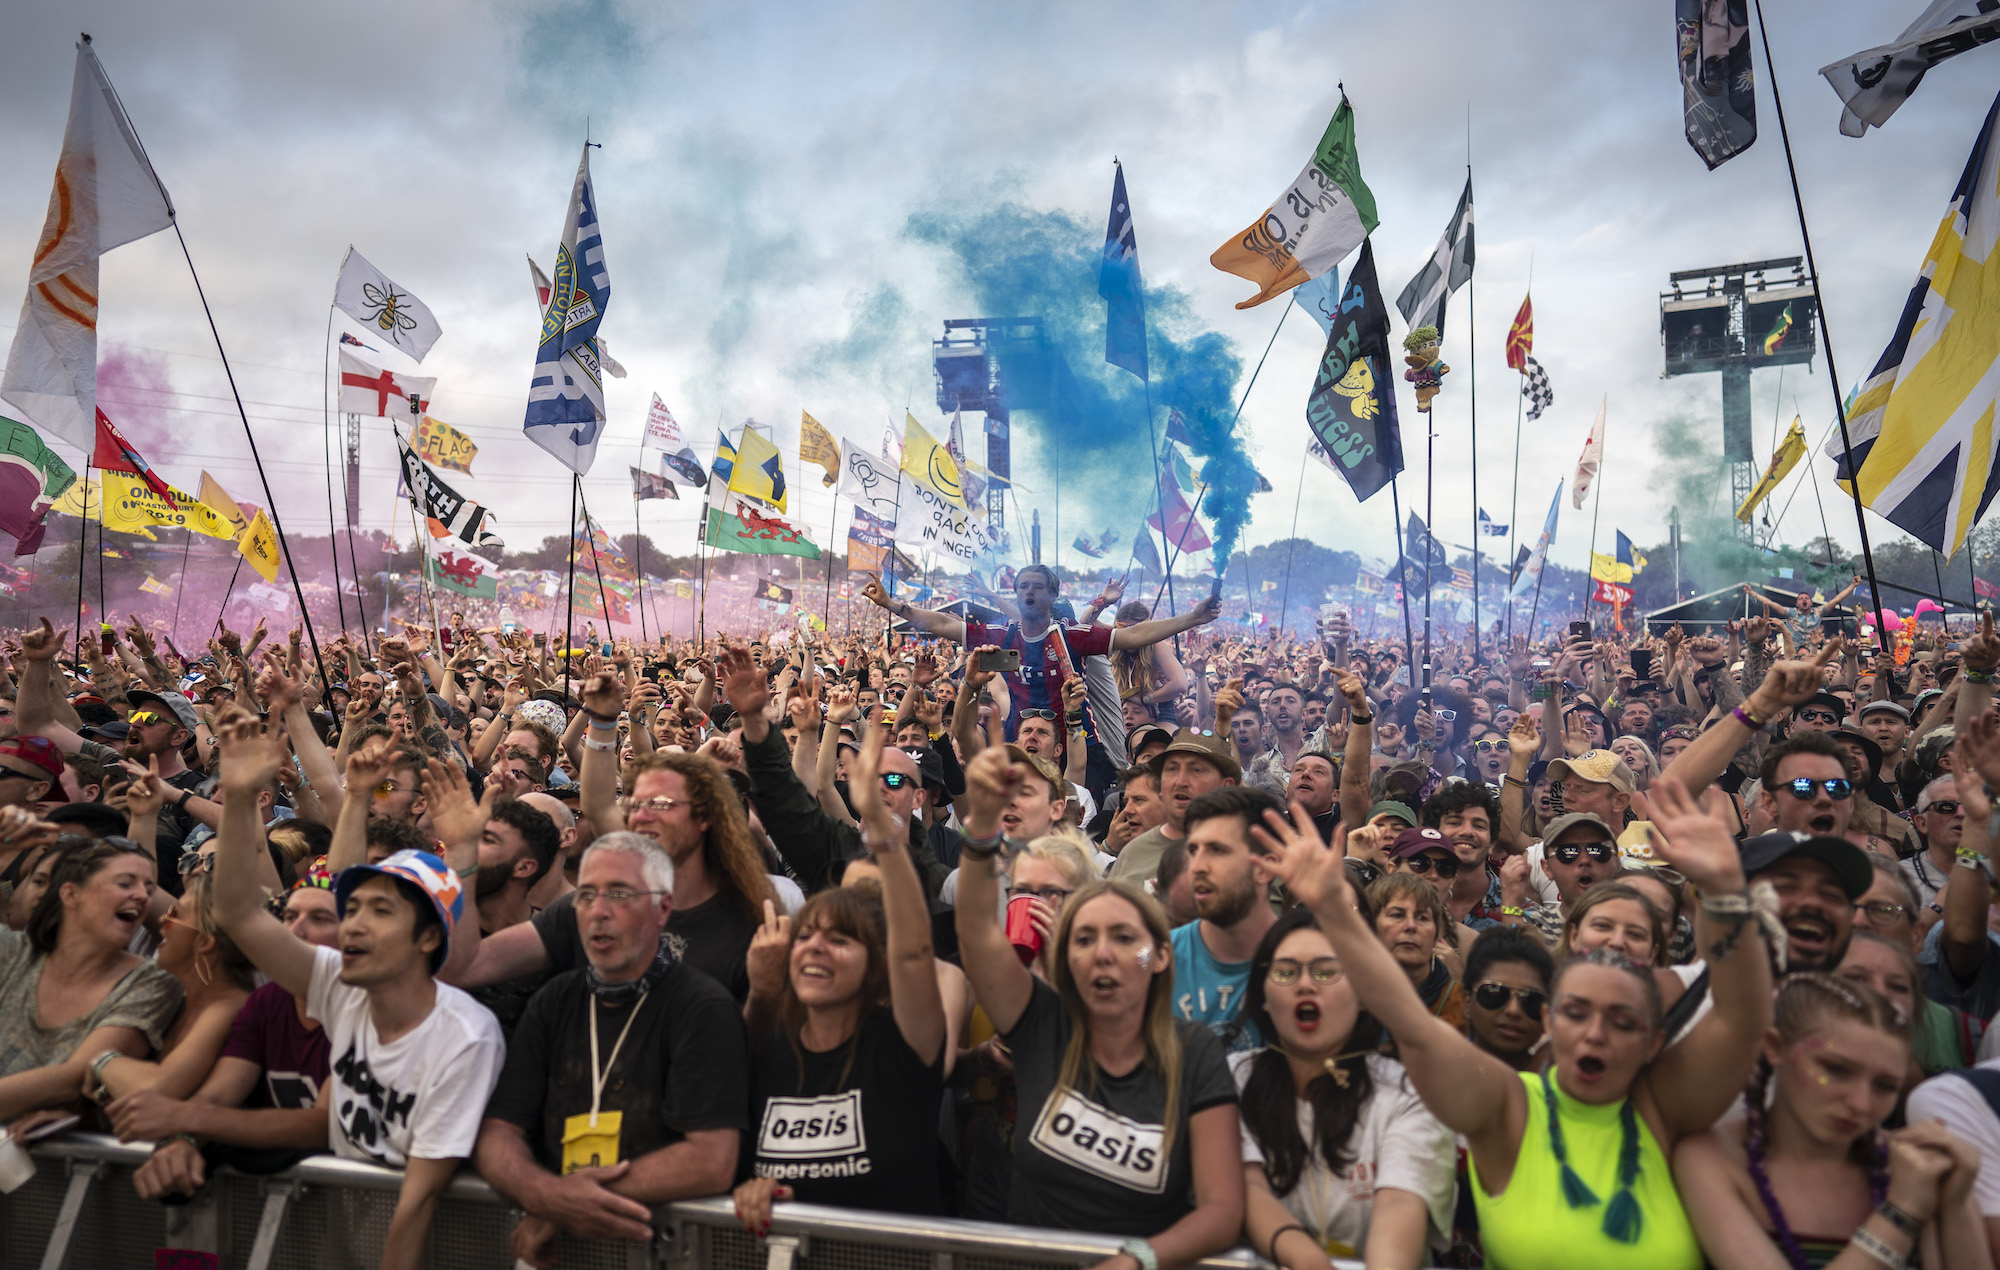 Fans react as first batch of Glastonbury 2020 coach tickets sell out in just 27 minutes